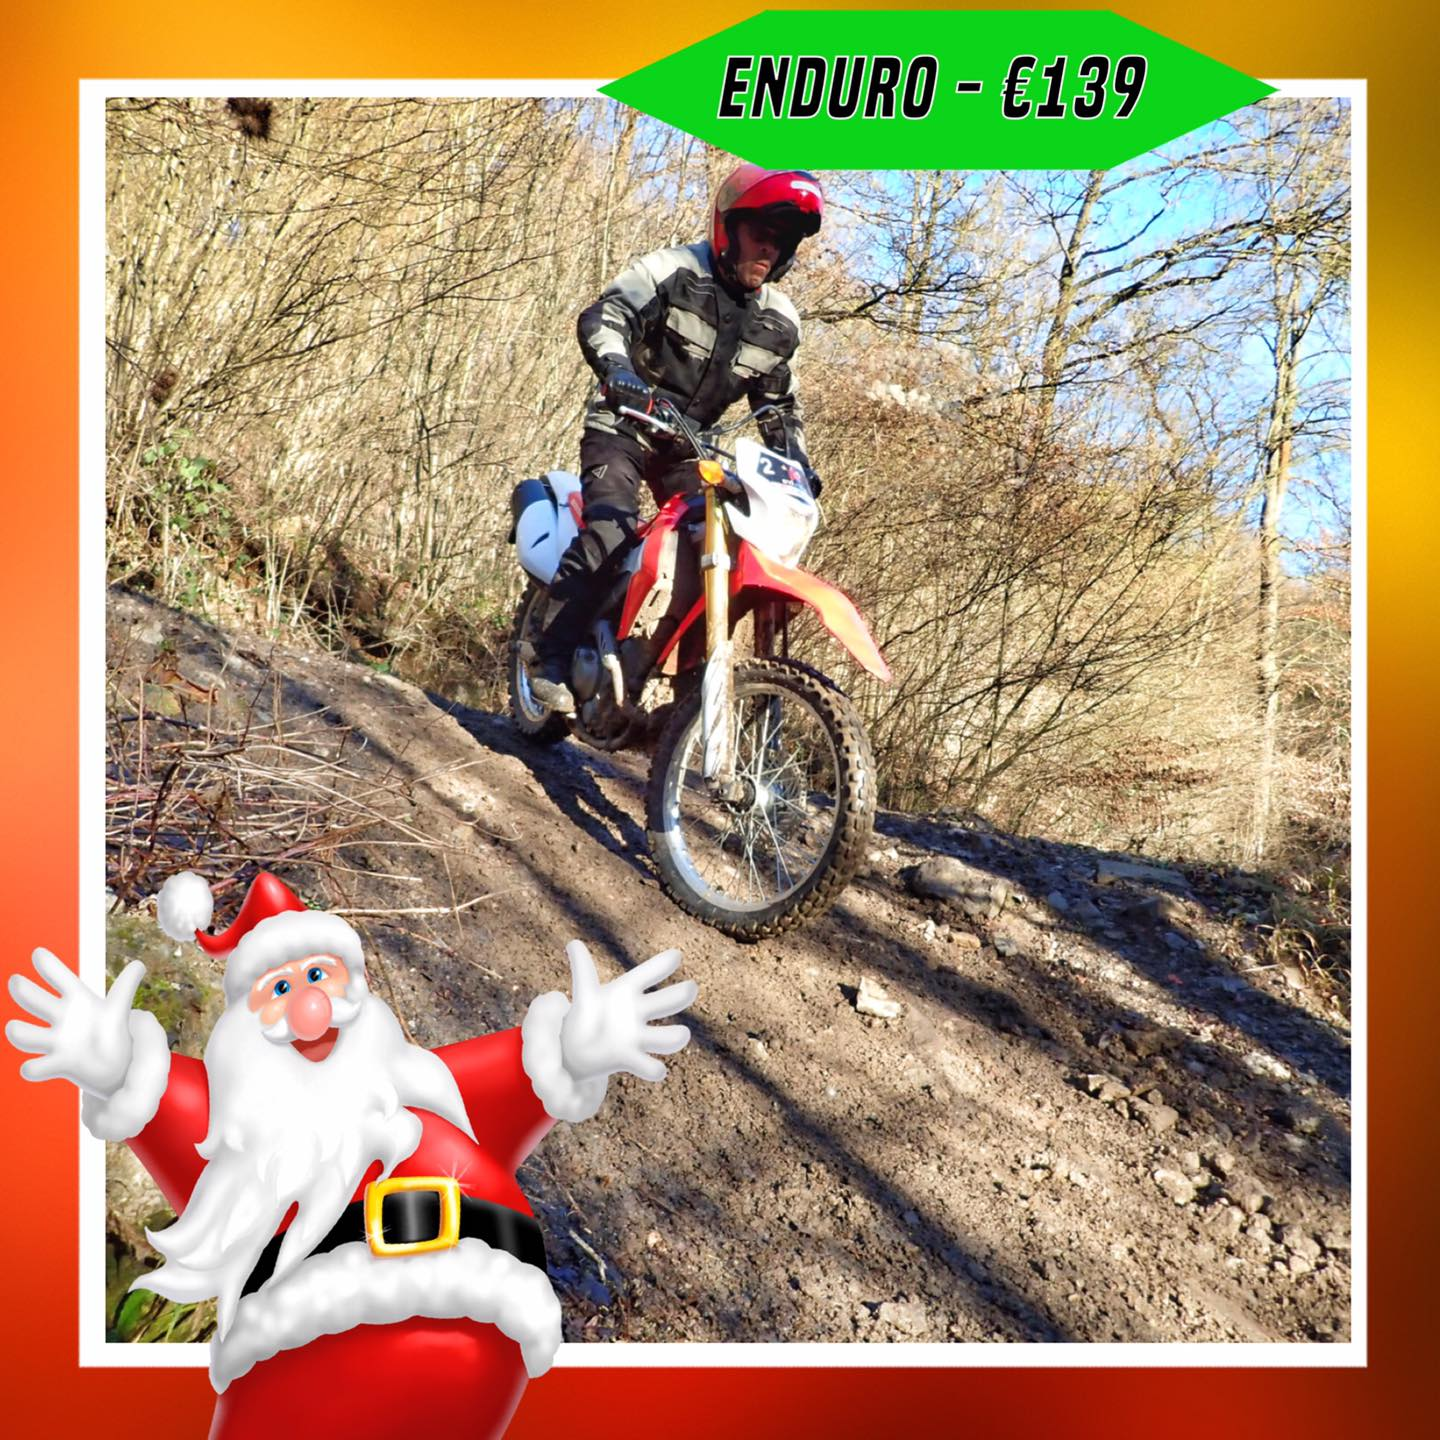 Kerst-initiaties Bilstain Endurofun 21